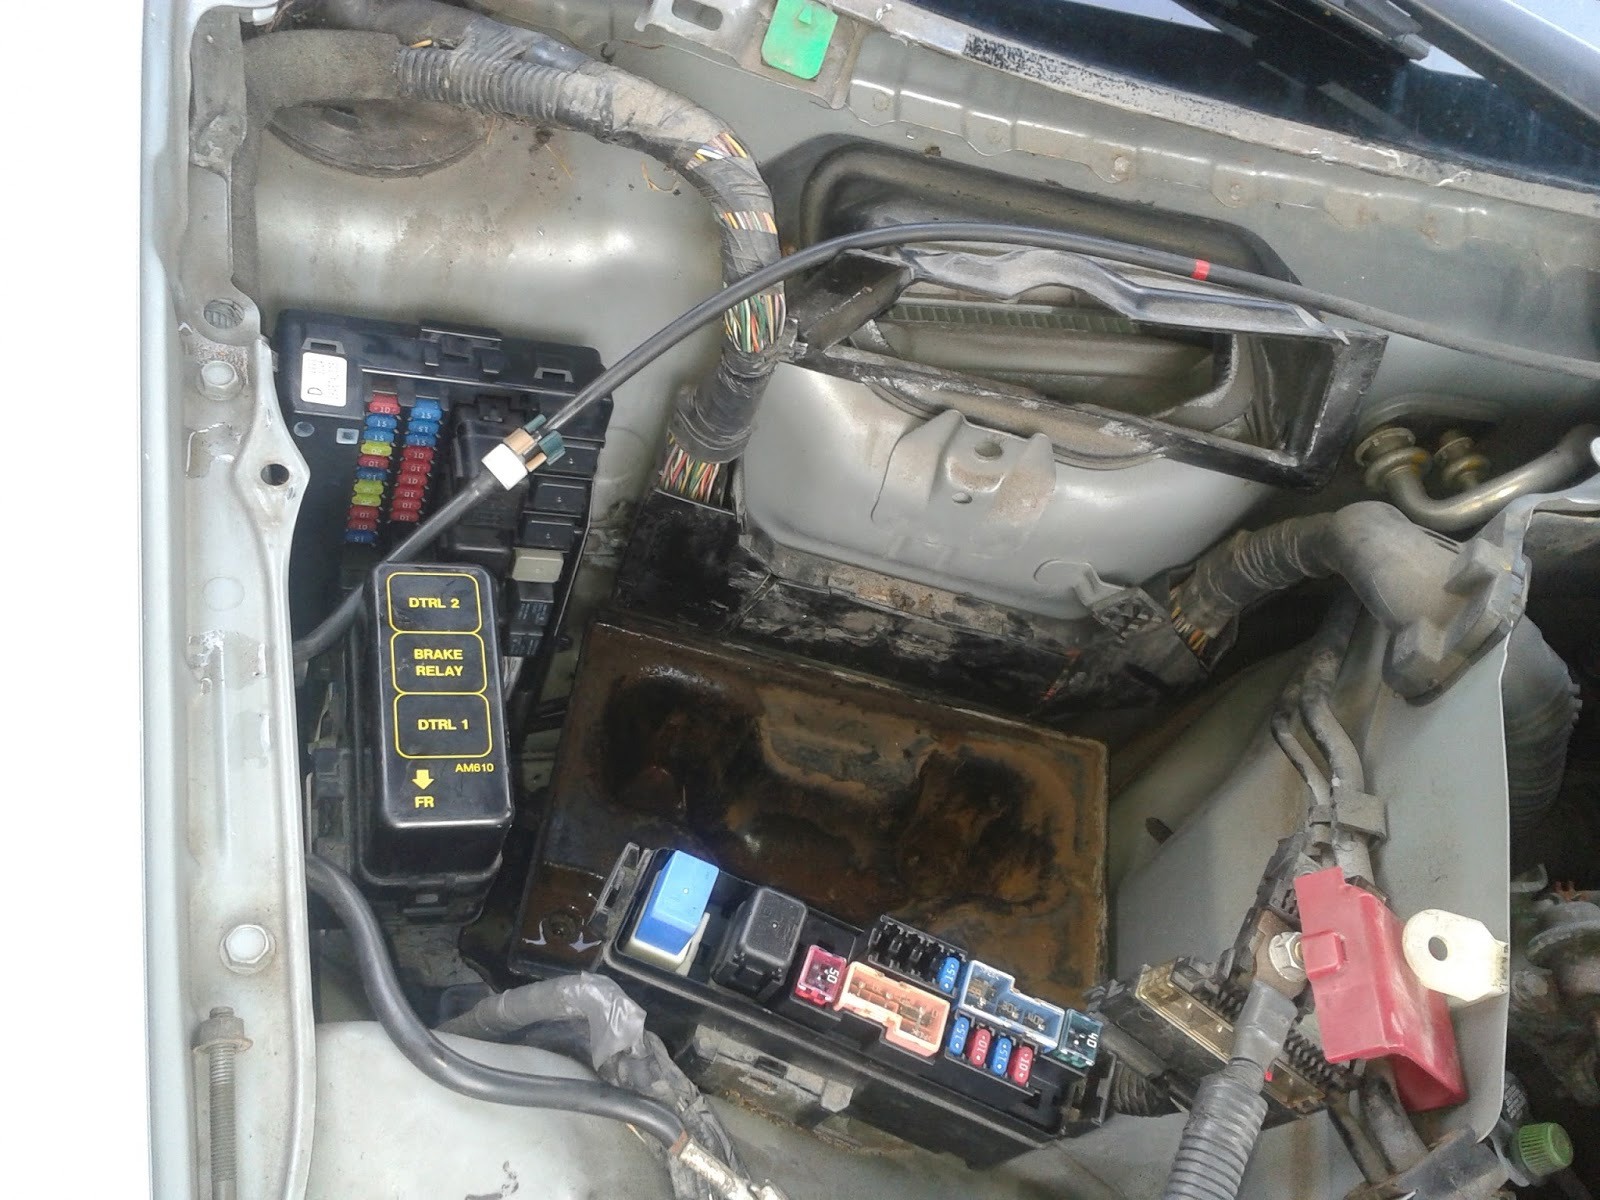 2015 05 27%2B18.55.50 zf inifiniti g35 2003 wet ipdm issue, how to fix it 2005 infiniti g35 fuse box location at panicattacktreatment.co